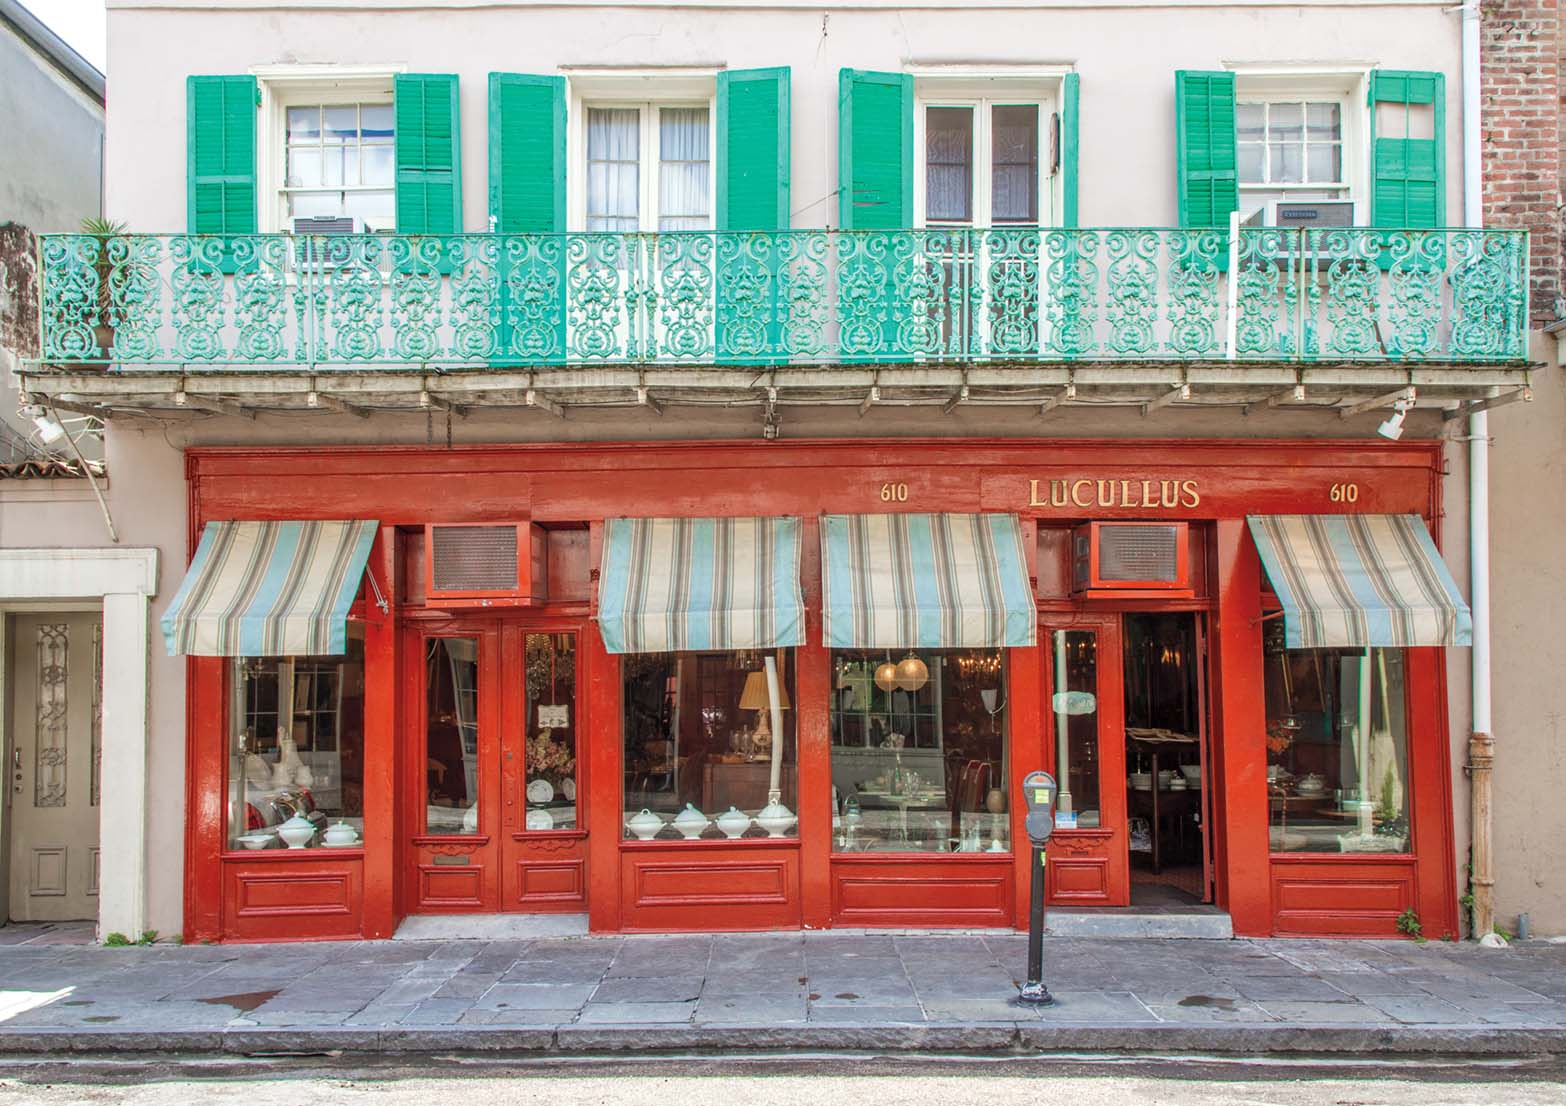 storefront of Lucullus culinary antiques shop in New Orleans